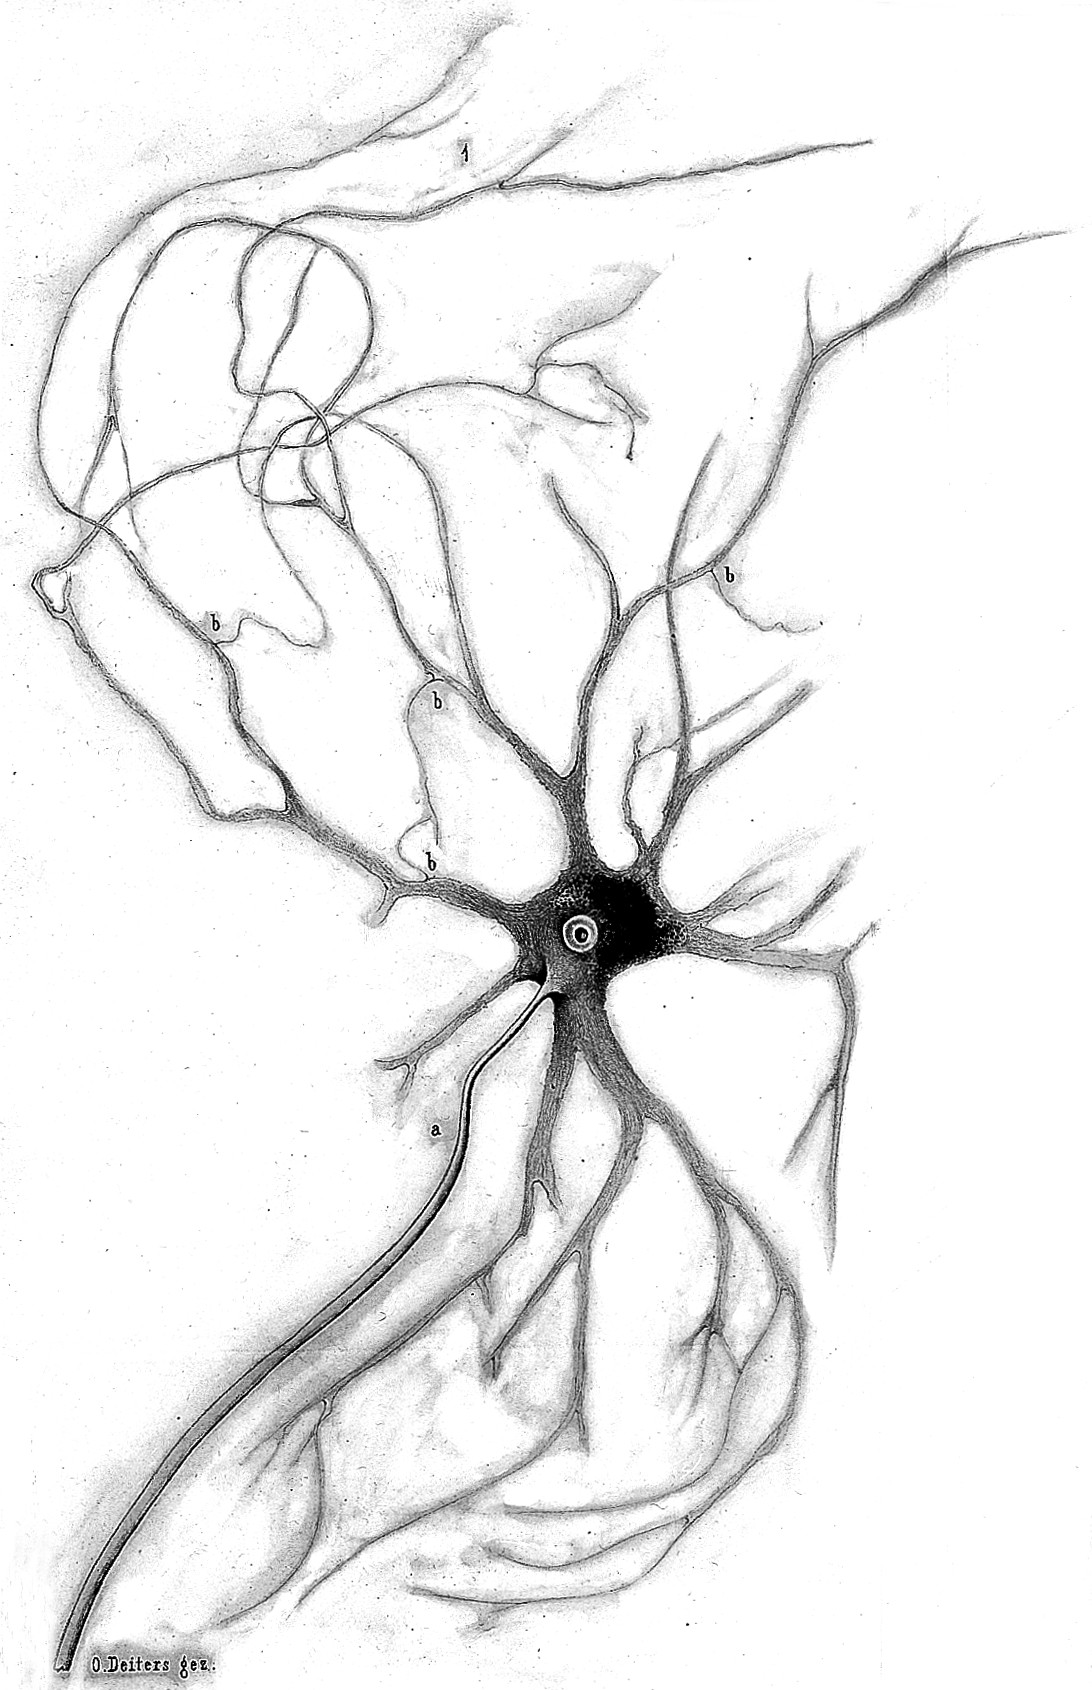 Spinal Cord Drawing At Getdrawings